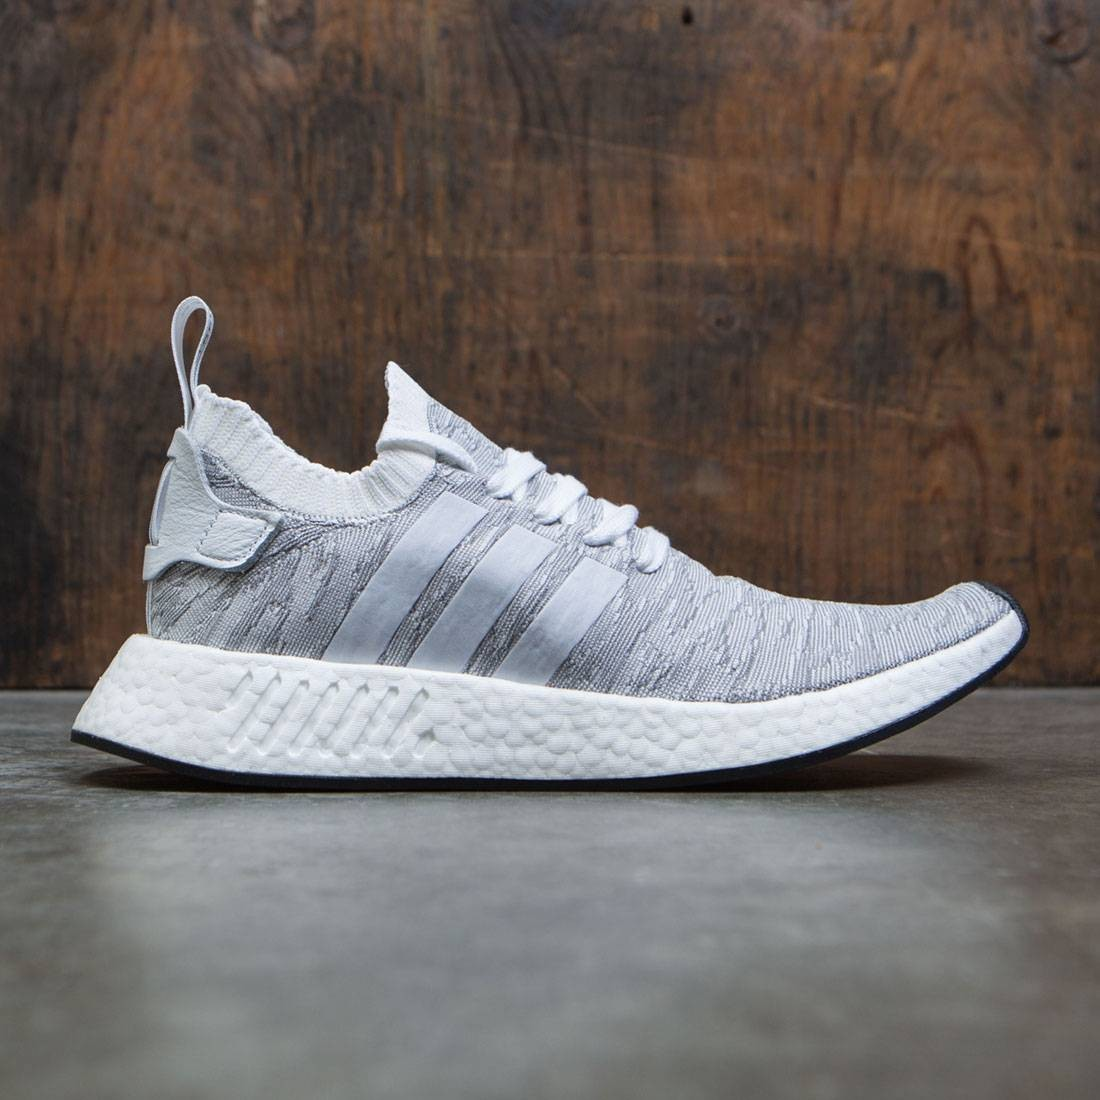 factory authentic 6fae6 108ef Adidas Men NMD R2 Primeknit (white / footwear white / core black)